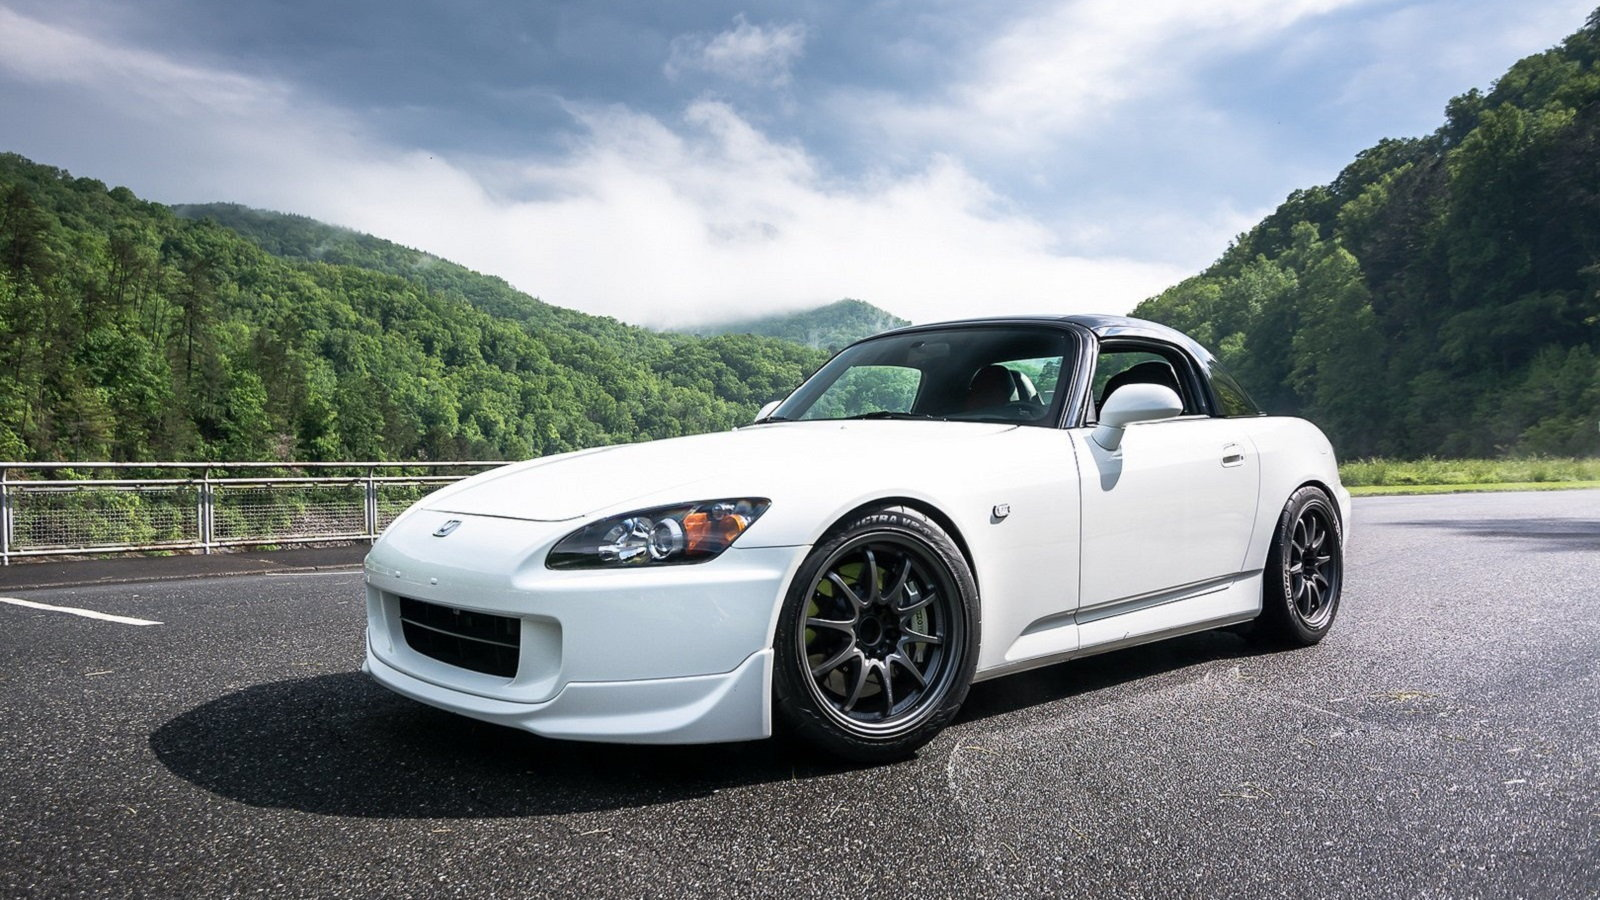 Member to Member S2000 Sale Proves Fourth Time's a Charm